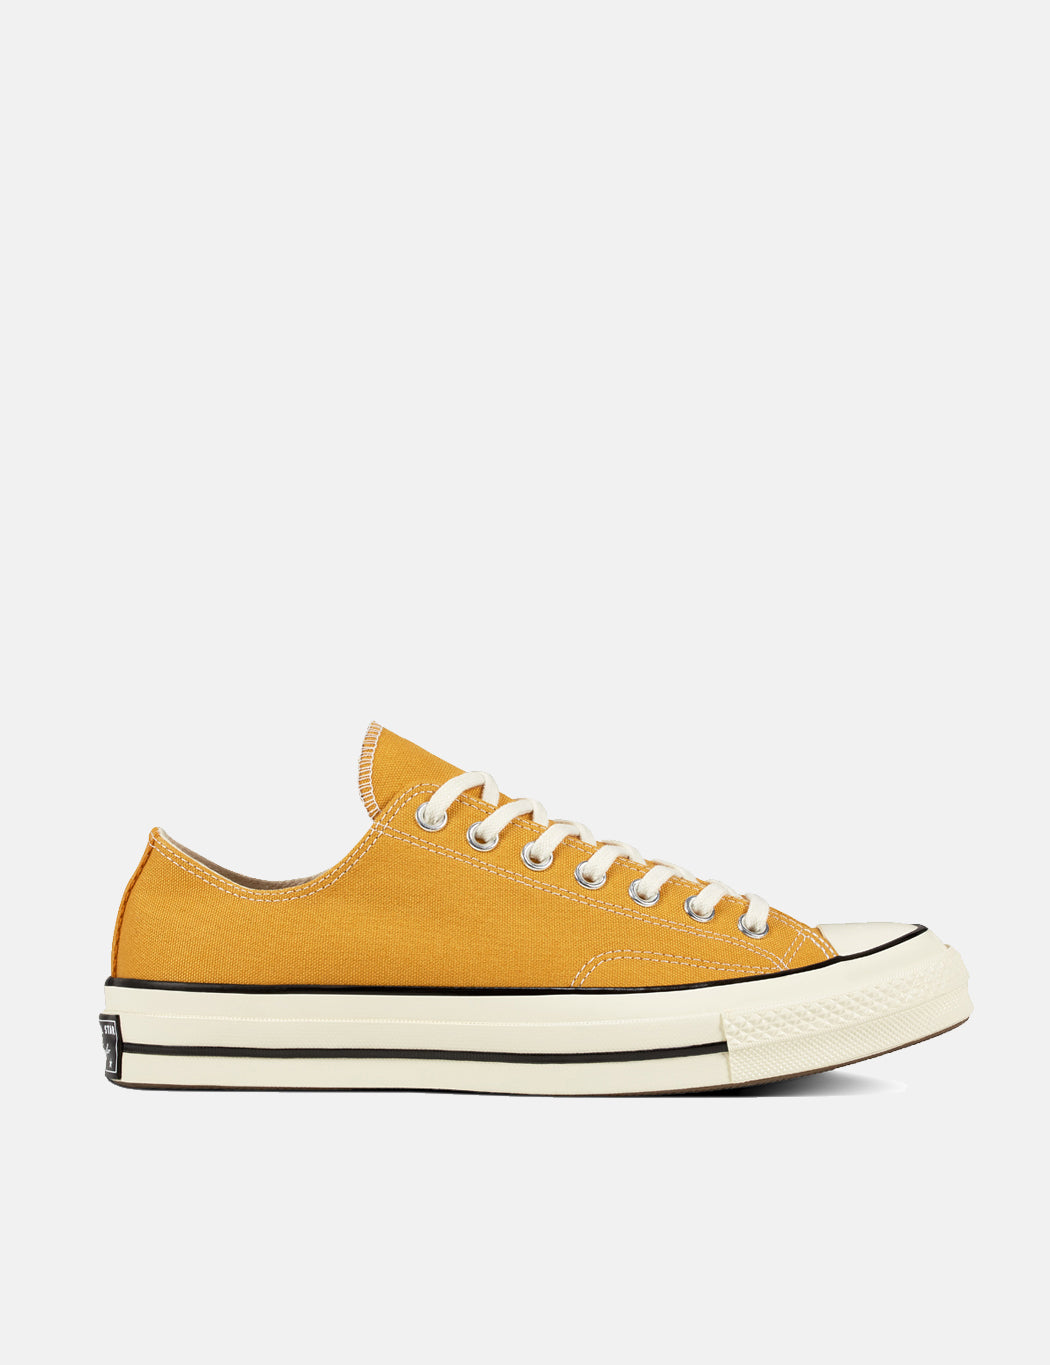 Converse 70's Chuck Taylor Low - Sunflower Yellow   URBAN EXCESS.